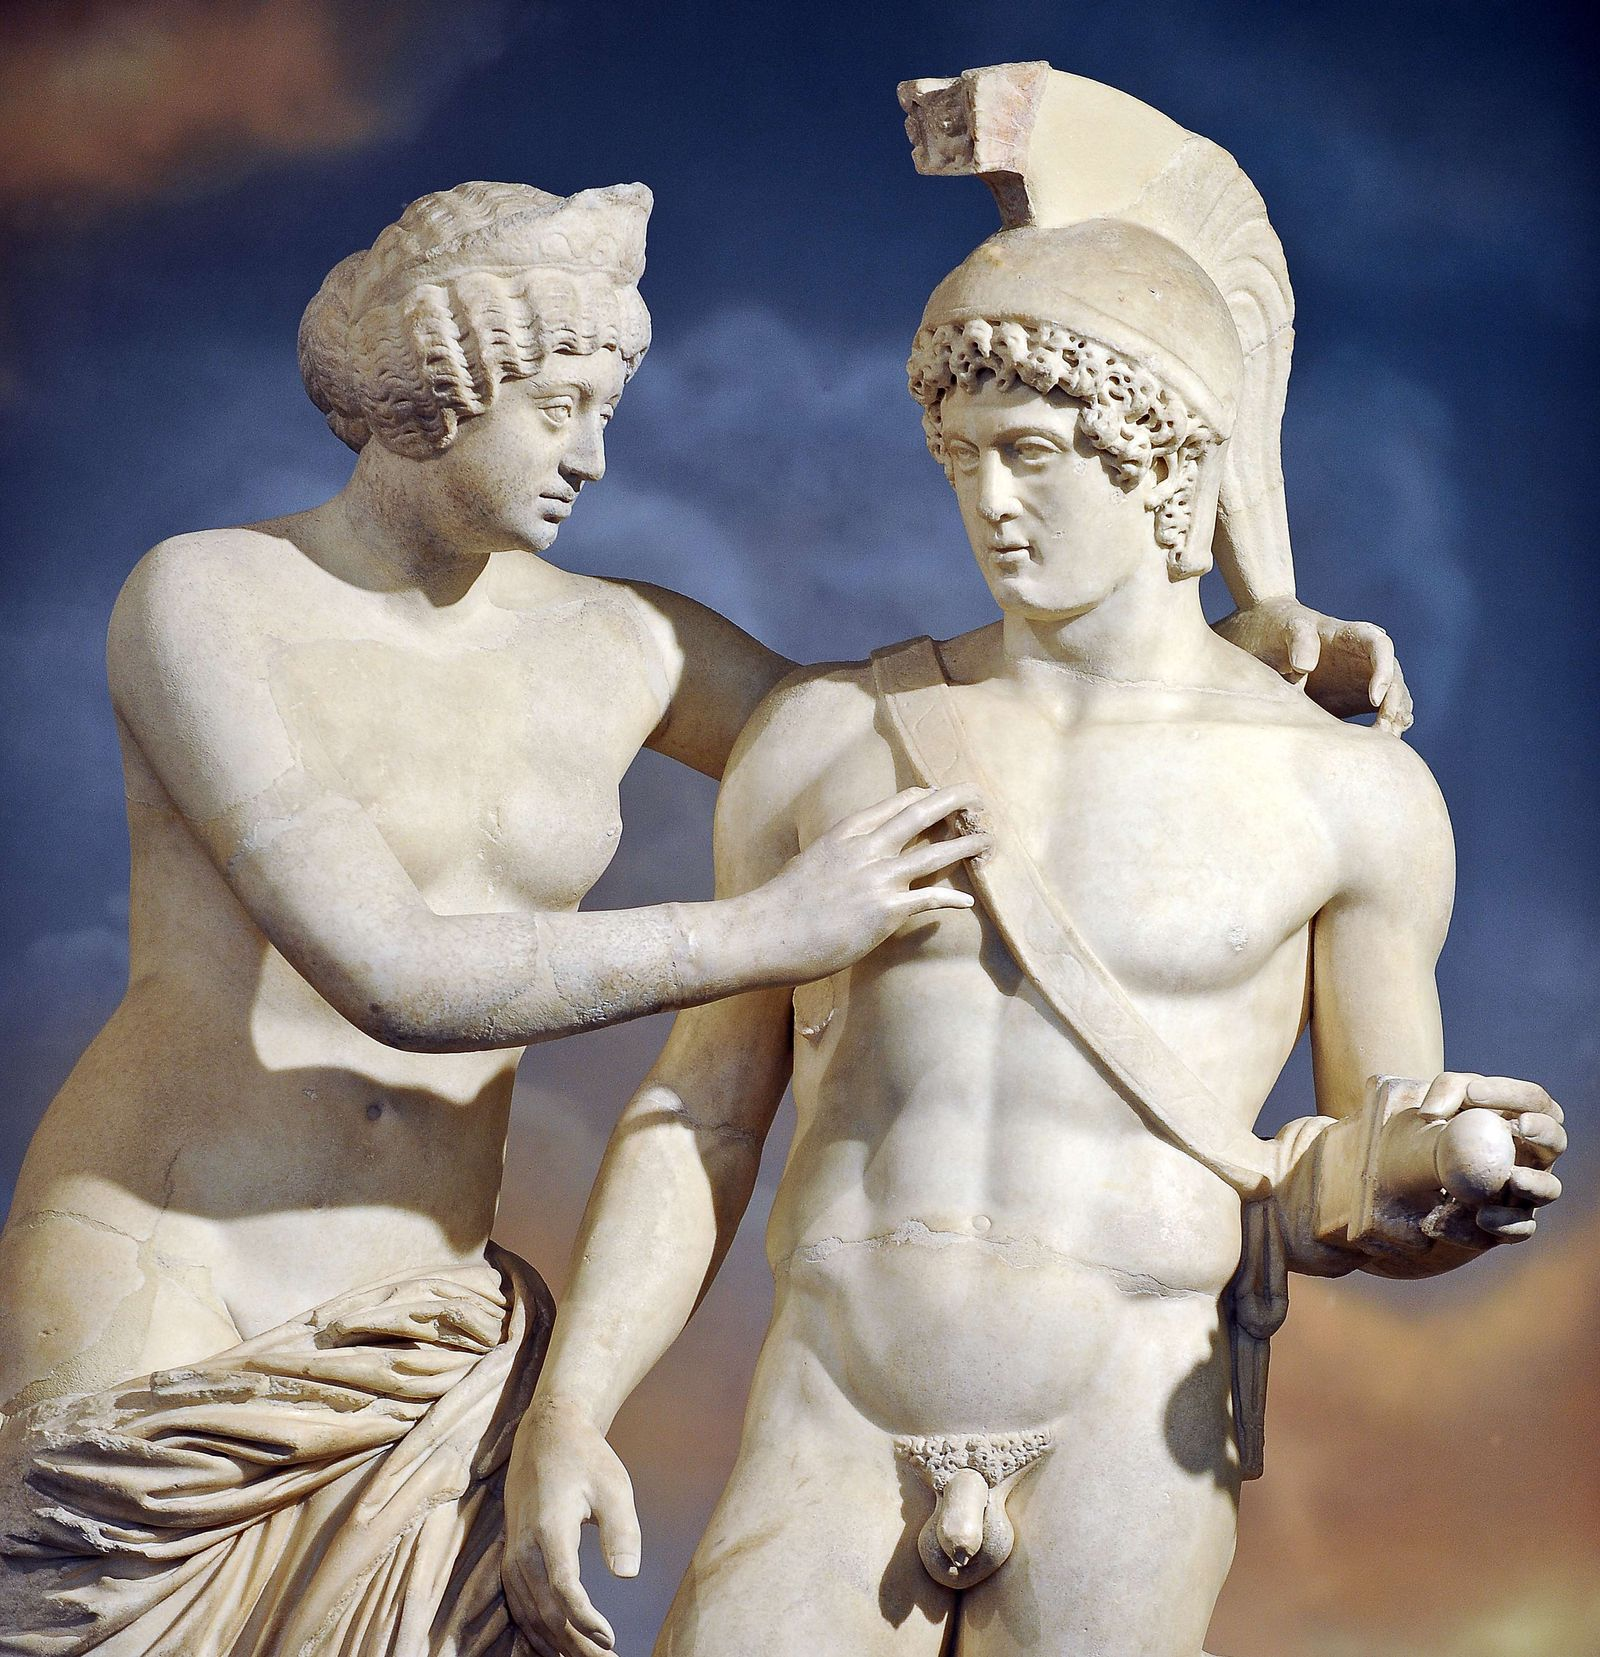 Pin on depictions of the nude figure in greek and roman sculpture